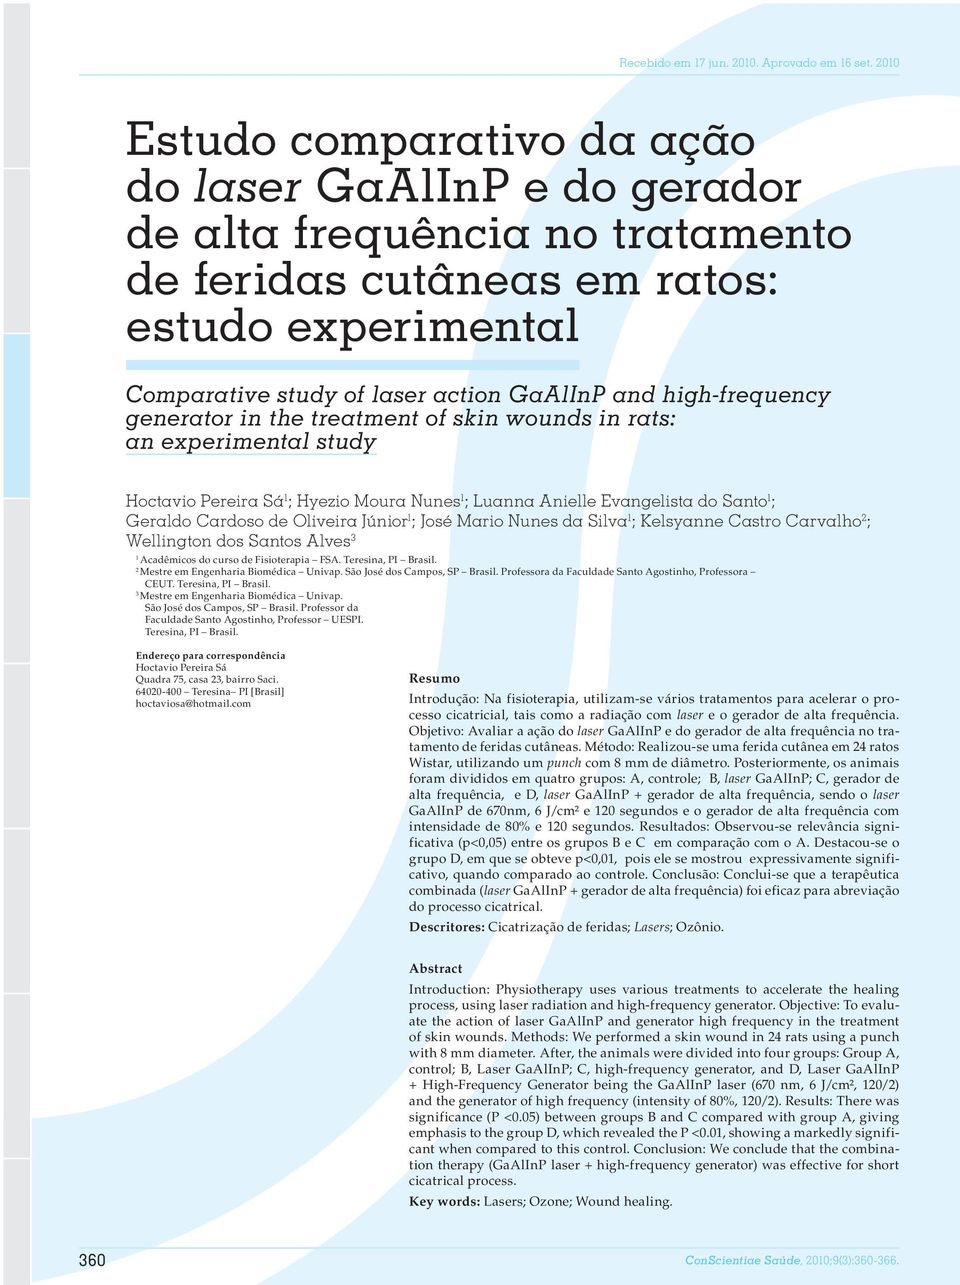 high-frequency generator in the treatment of skin wounds in rats: an experimental study Hoctavio Pereira Sá 1 ; Hyezio Moura Nunes 1 ; Luanna Anielle Evangelista do Santo 1 ; Geraldo Cardoso de